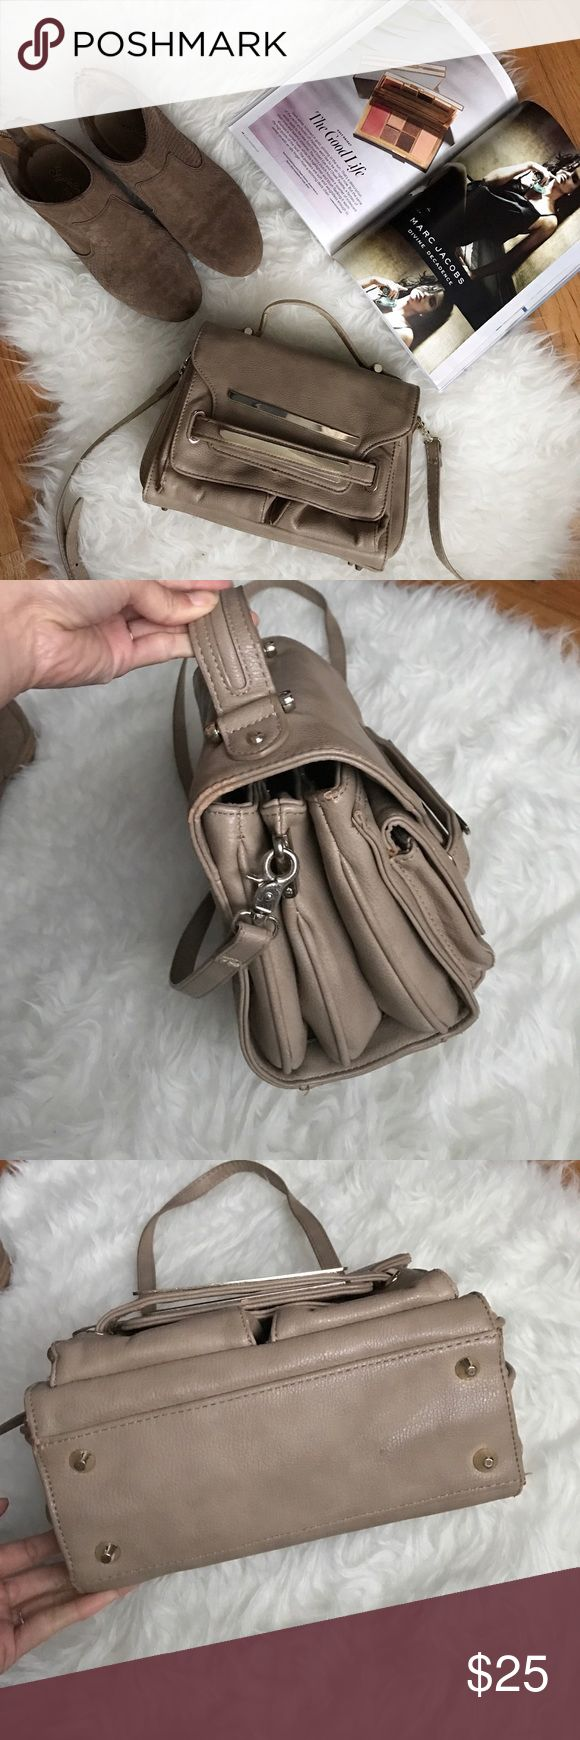 Cyber Monday Sale💥Zara Taupe Crossbody From ZaraBasic Collection, ton of rooms. Has 3 separate components. 4 credit cards slots and 1 pocket inside. Shown some signs of wear. Great deal!! For Holliday 🎁. Bought over $129. Comes with detachable strap. Zara Bags Crossbody Bags